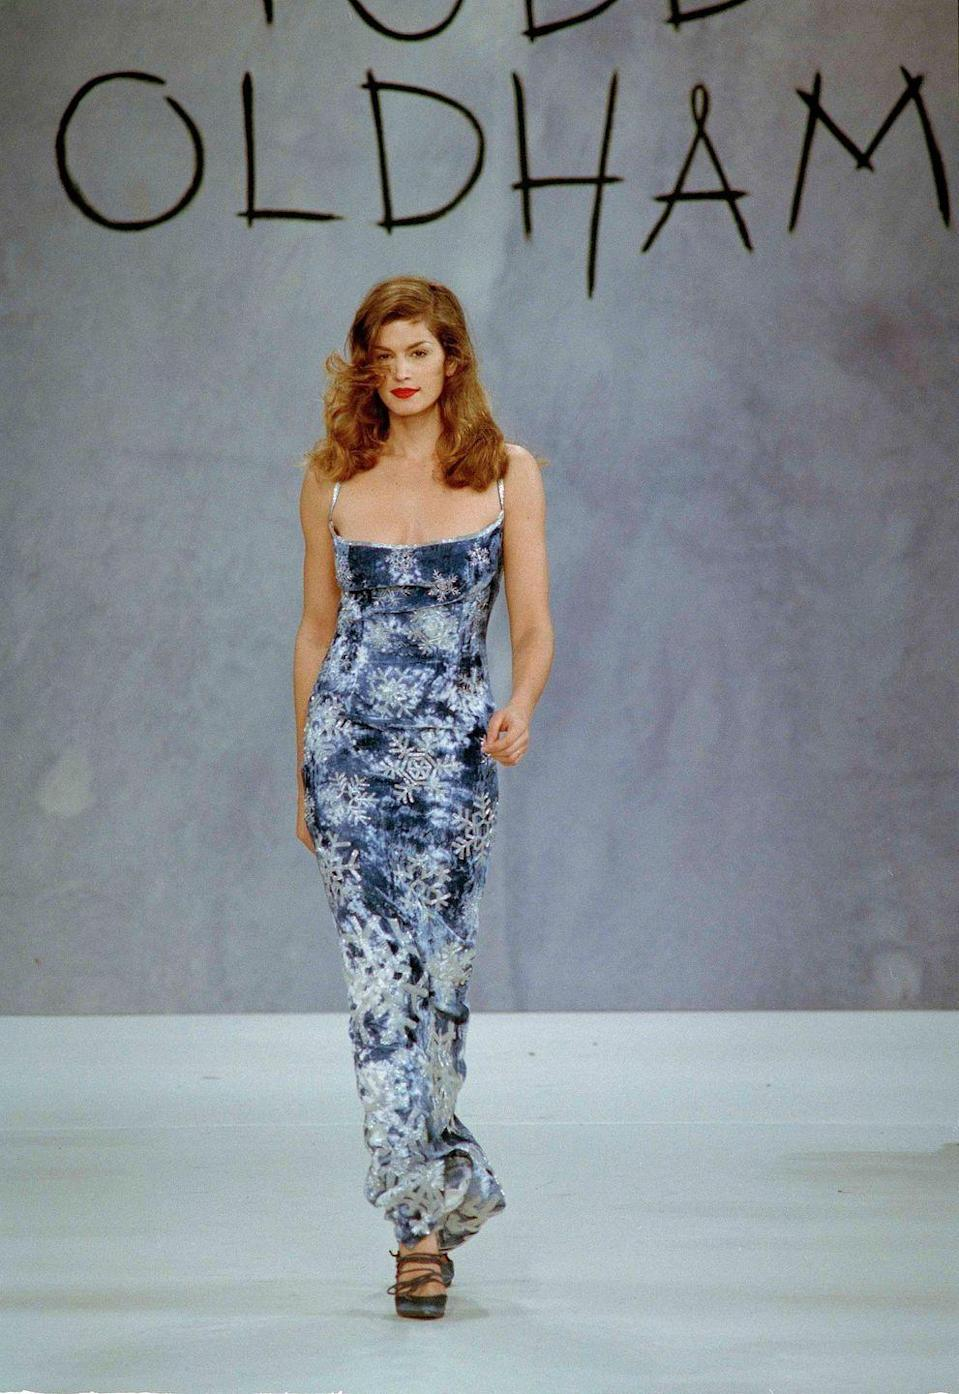 <p>More than most, Crawford'a renown in the '90s superseded the industry. She was—and still is—a cultural icon, starring in not just myriad fashion campaigns, but also in Pepsi commercials. Her appearance on the small screen, too, extended to hosting <em>House of Style</em> on MTV. With her distinct beauty mark, her face was plastered on billboards and advertisements. And now, her daughter, Kaia Gerber, is following in her famous footsteps. </p>